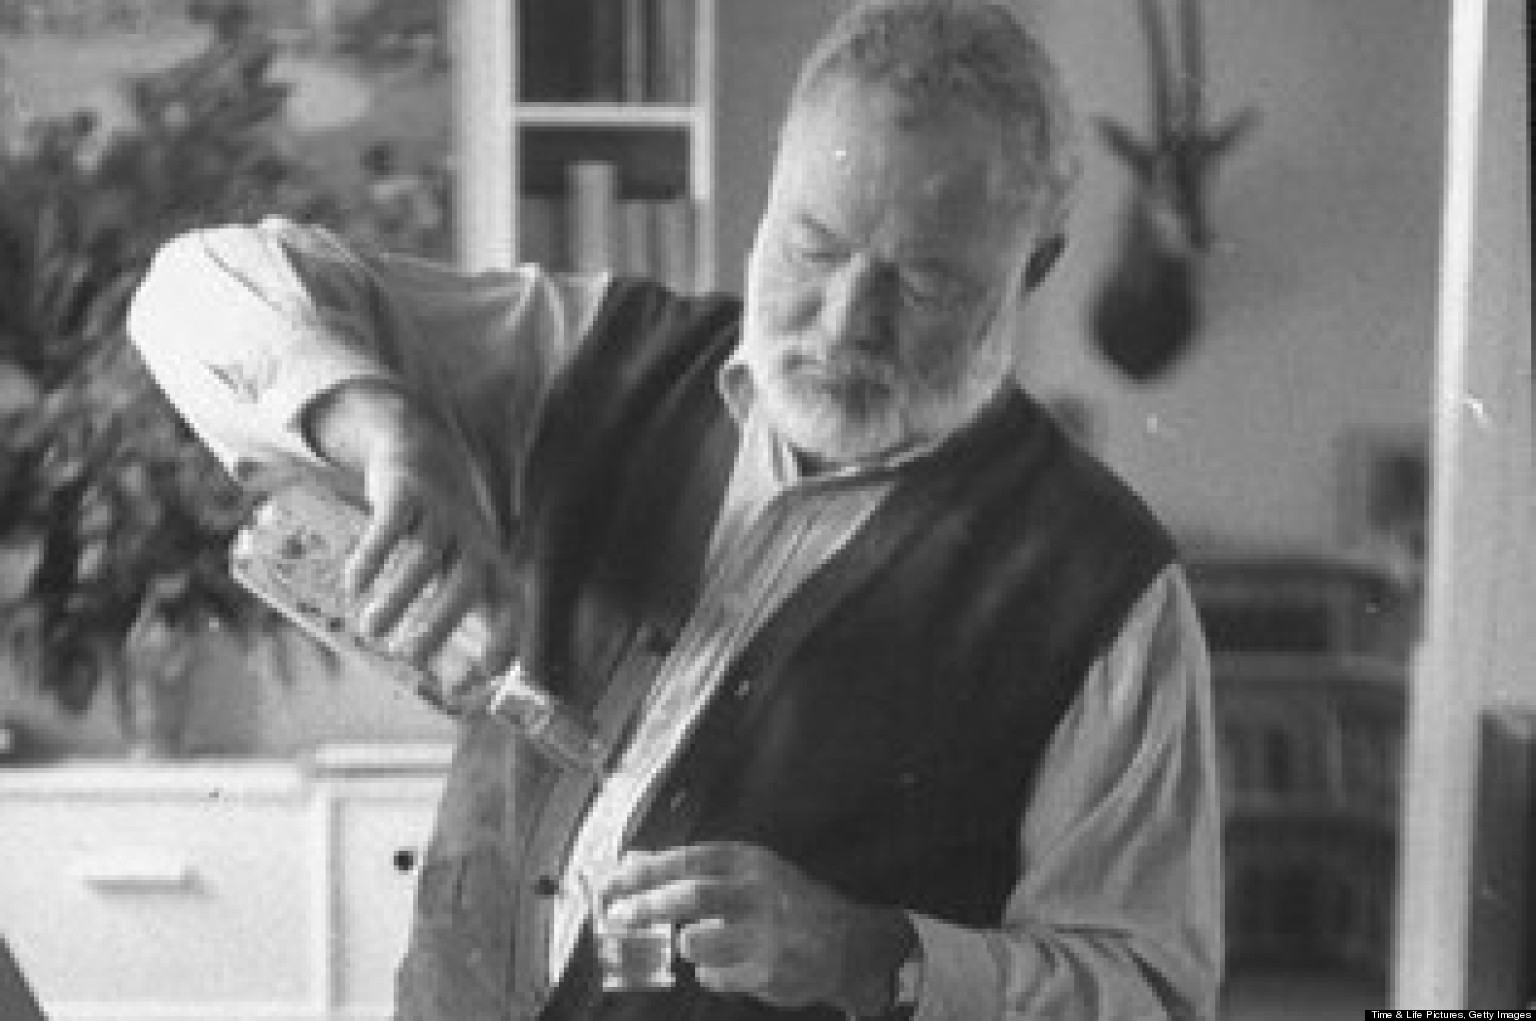 a biography of the businessman ernest hemmingway Hemingway did not go directly to south florida from paris, but rather arrived  through  to be critically important in hemingway's later personal and  professional life  it was filled with interesting people, ranging from well-to-do  businessmen.